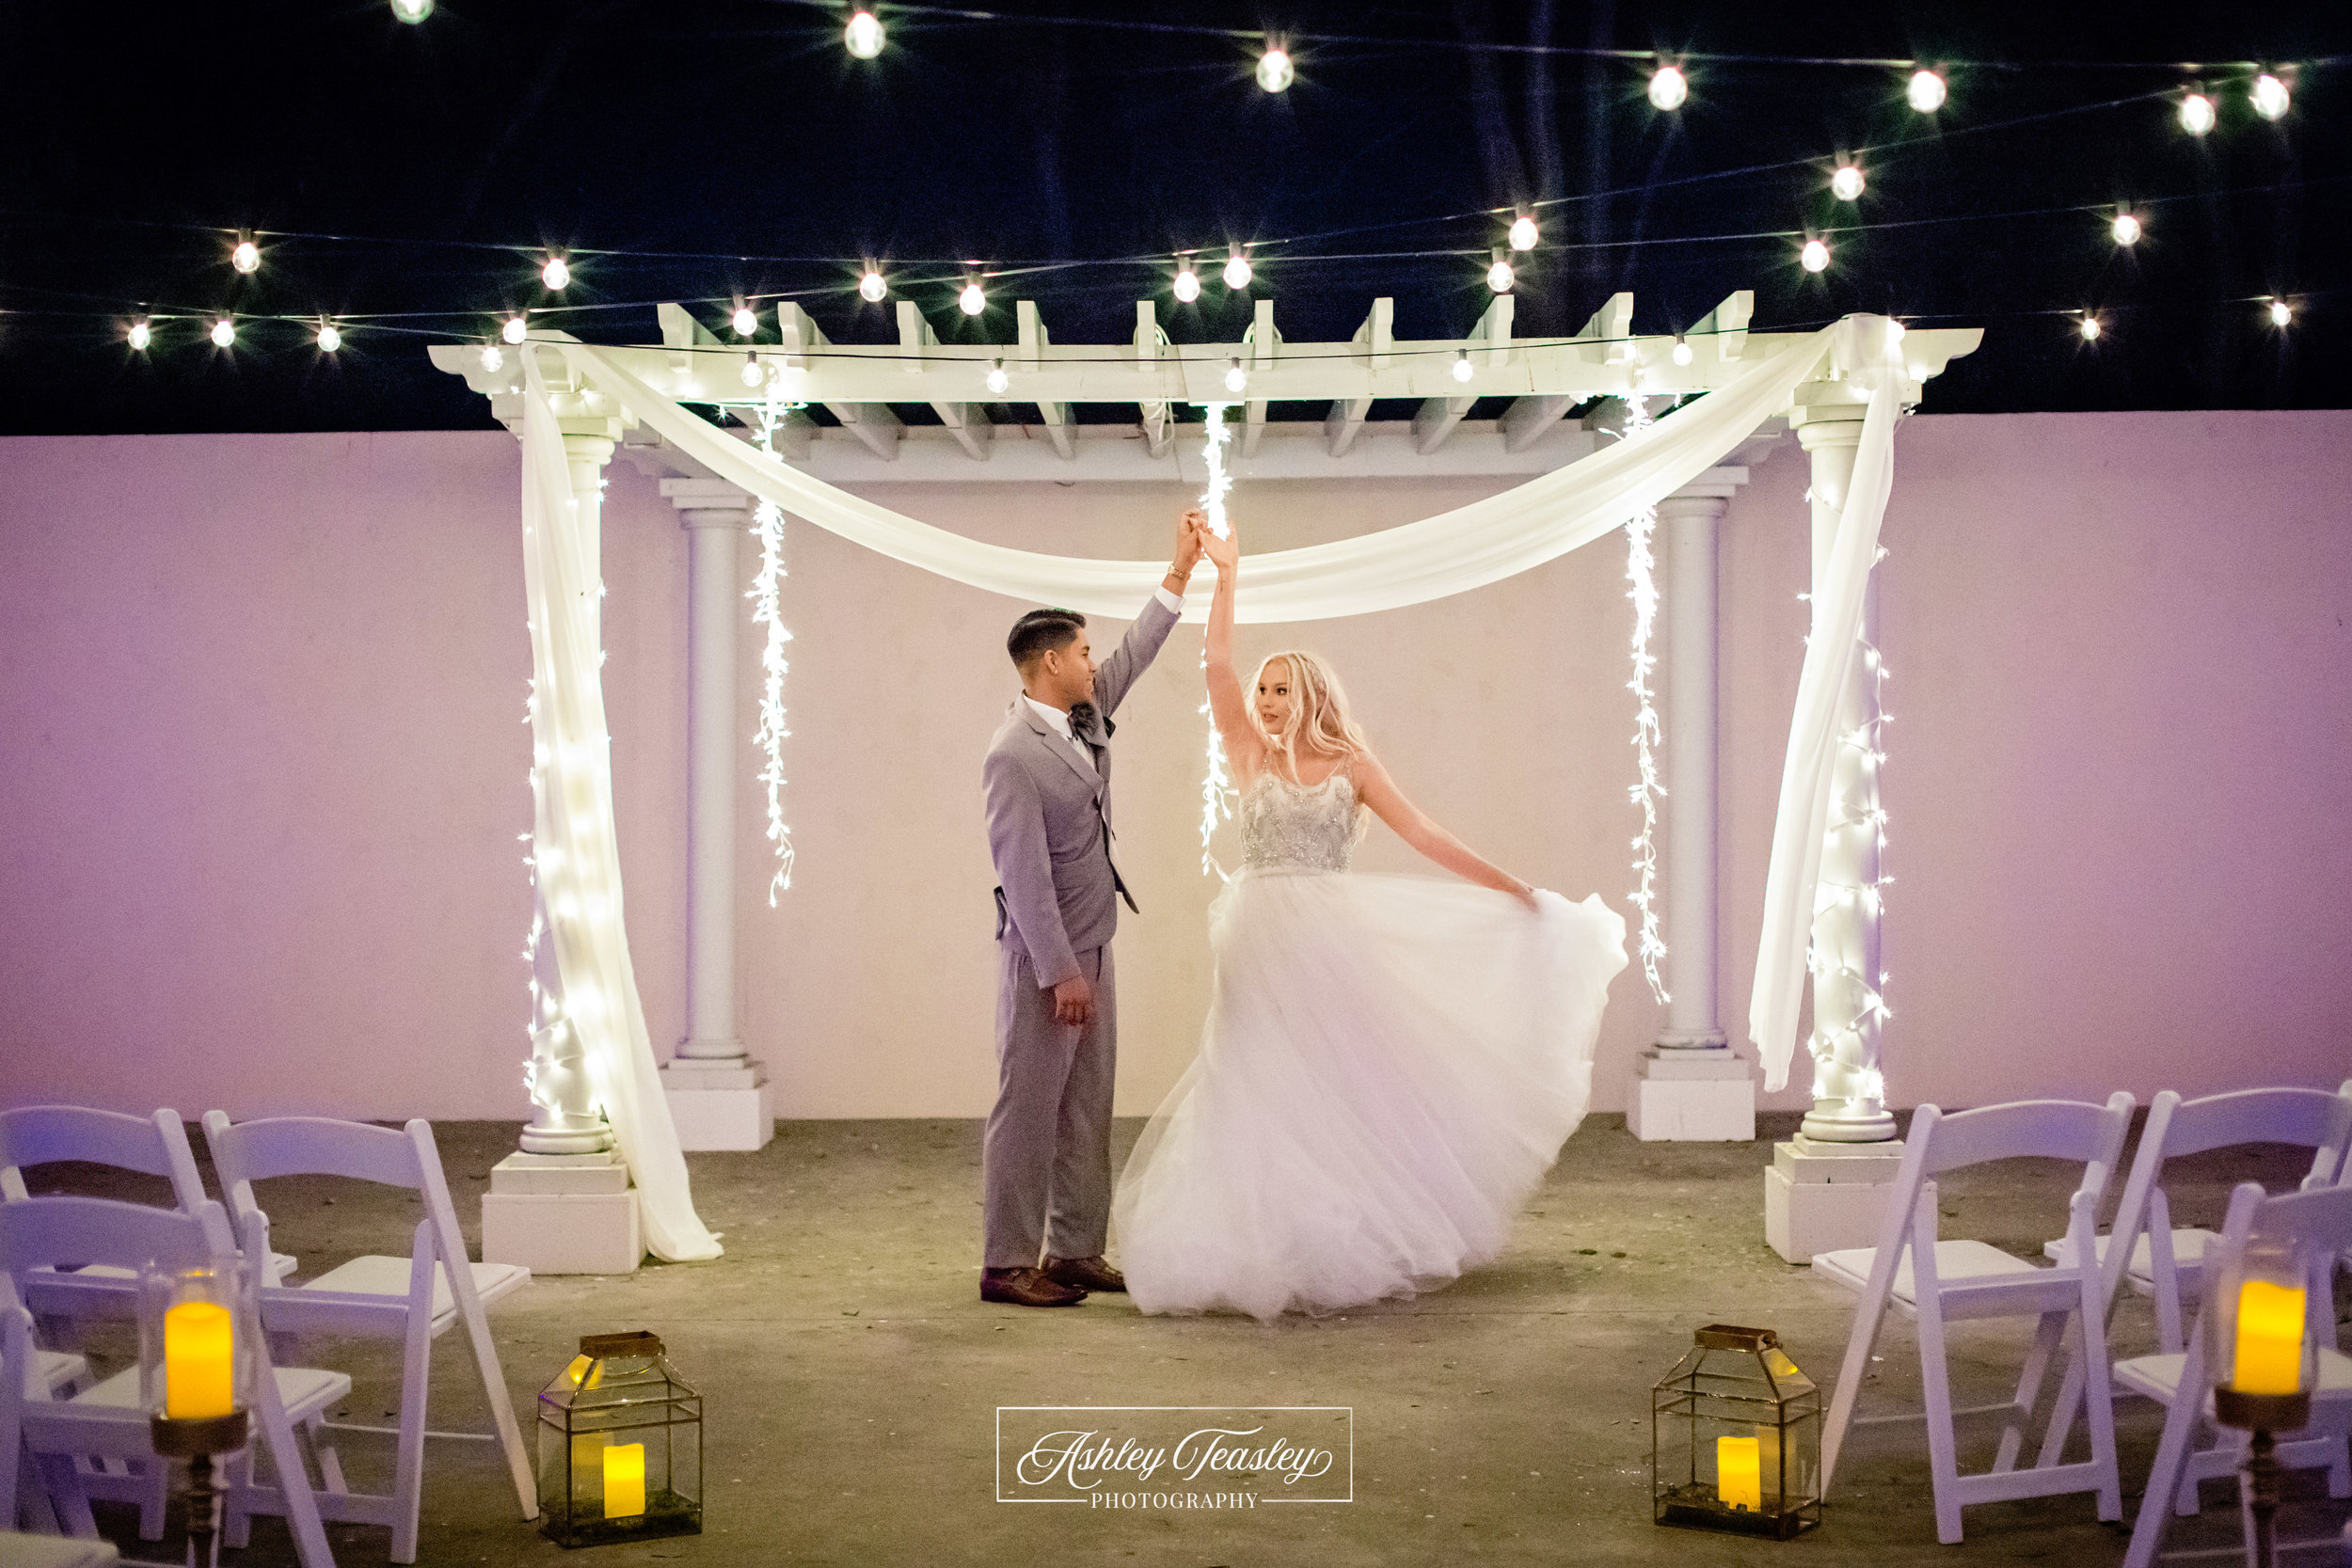 Collaboration - Belle Vie Vineyards - Sacramento Wedding Photographer - Ashley Teasley Photography (2 of 2).jpg